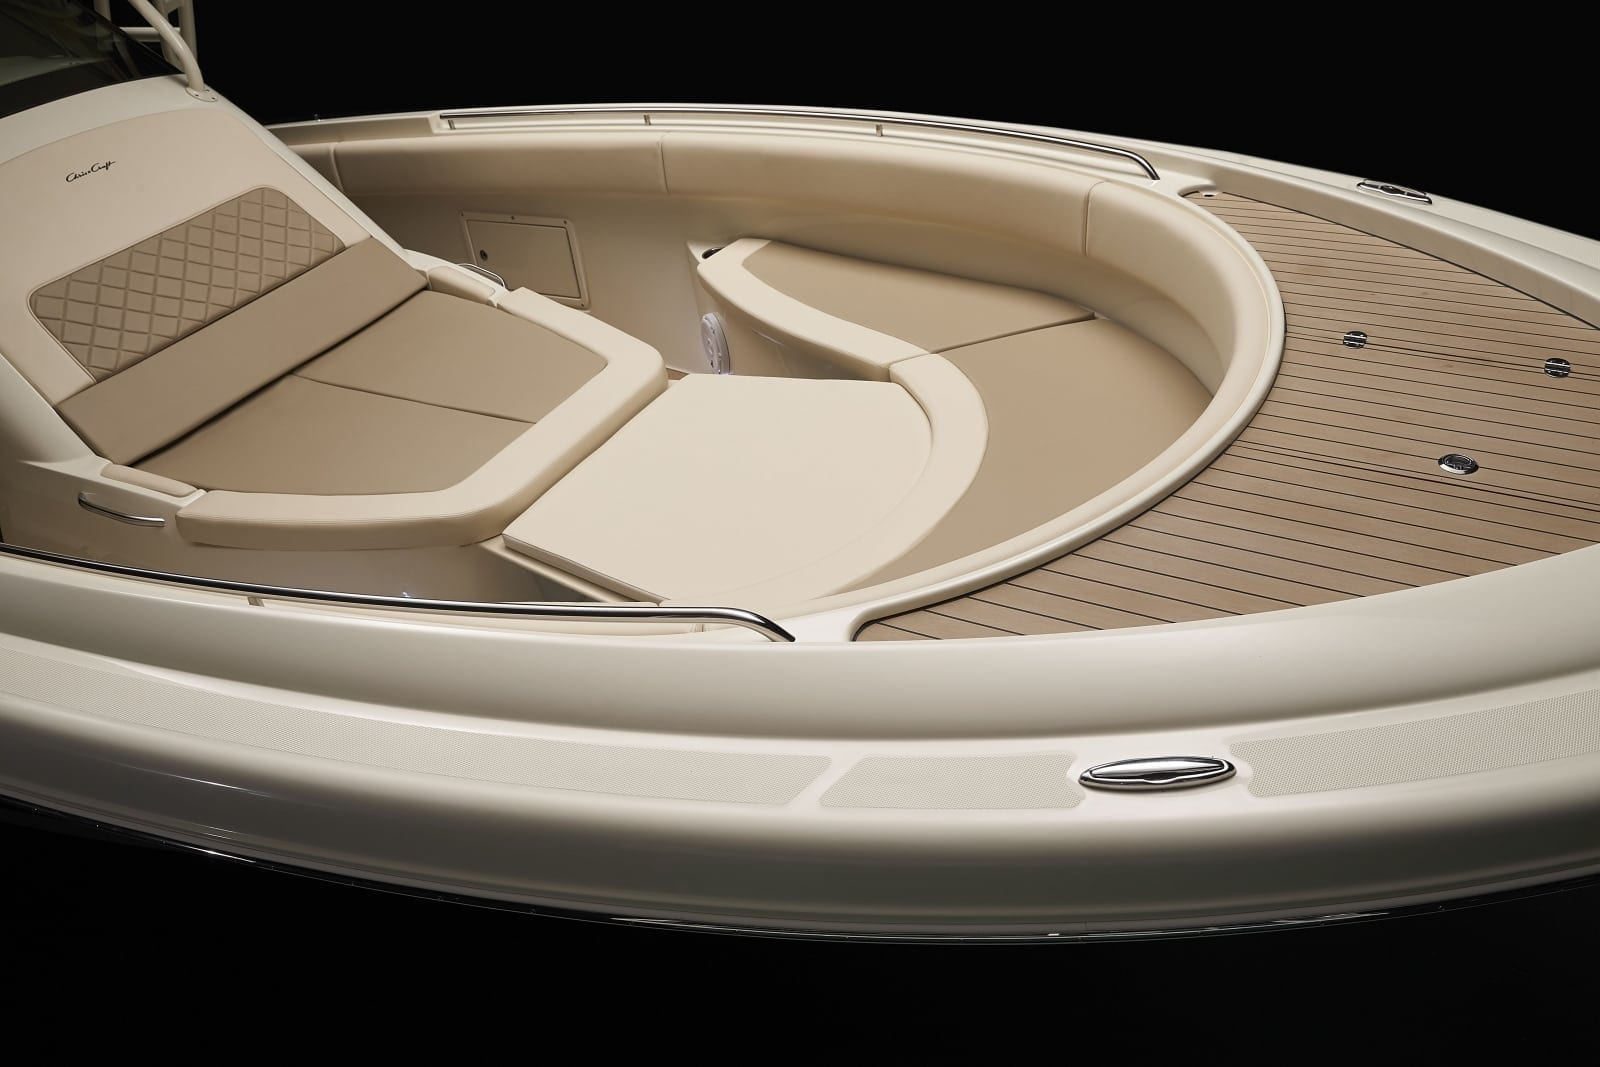 Chris Craft Catalina 34 Bow Seating and Table